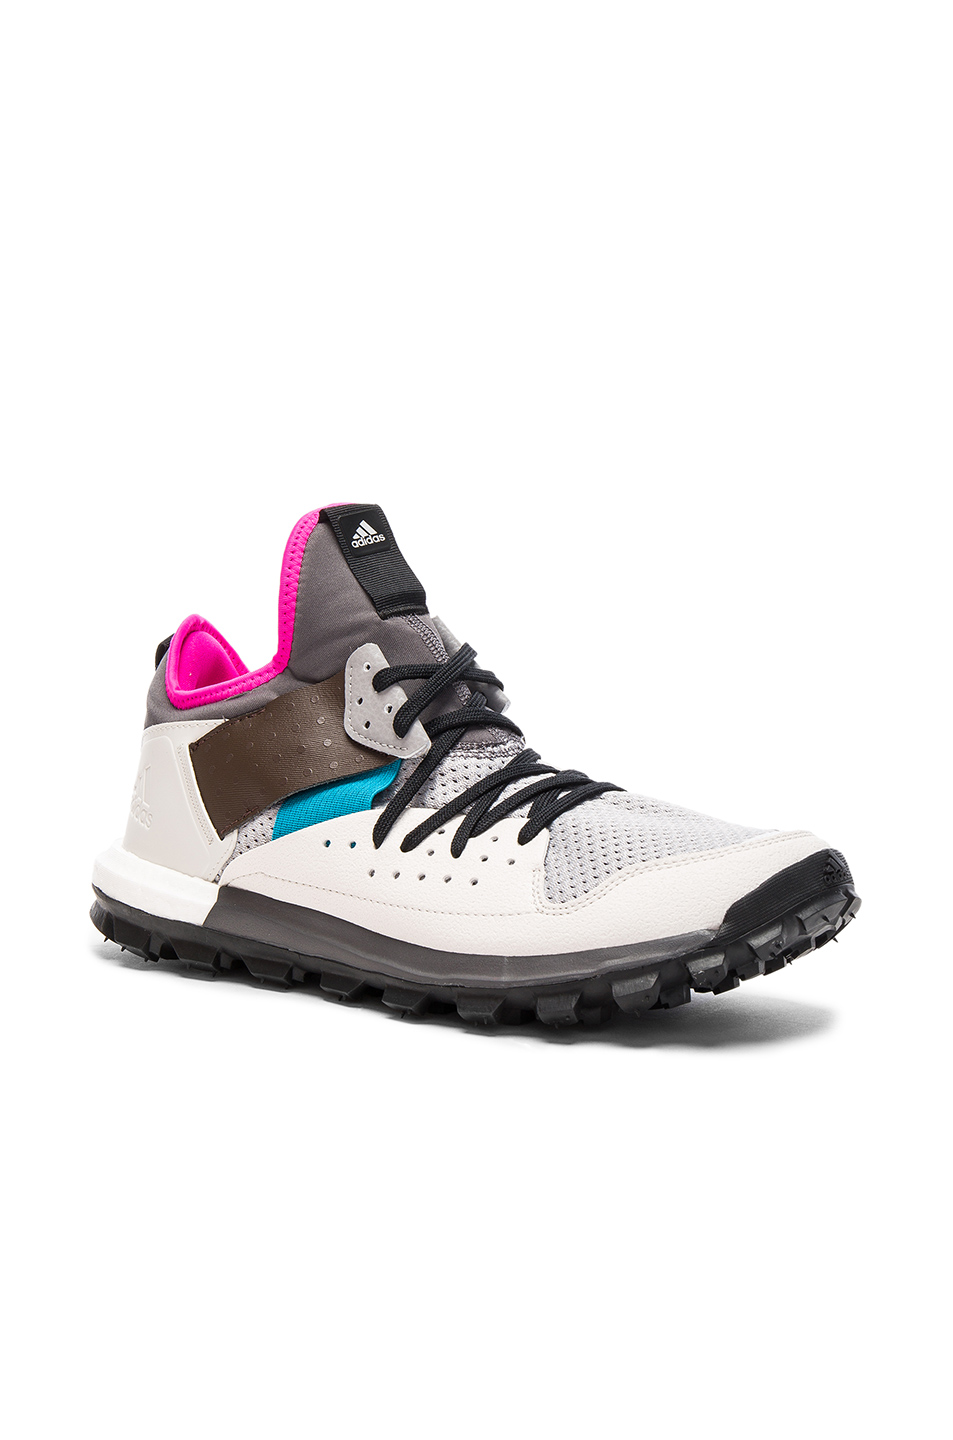 kolor x Adidas Knit Response Trail Sneakers in Gray